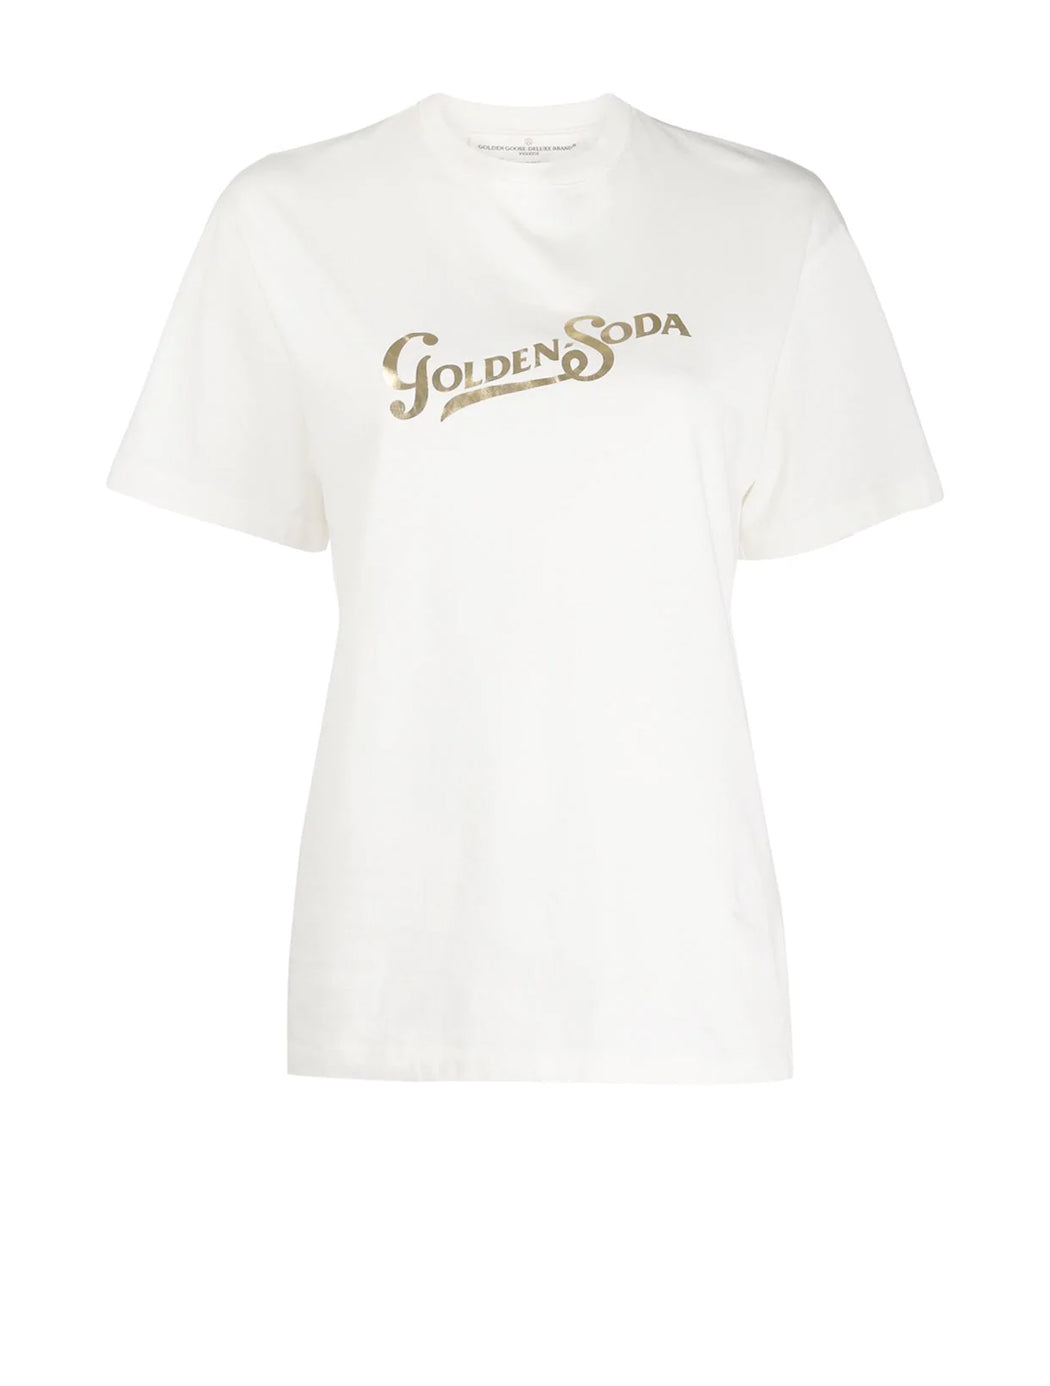 Golden Soda Foil T-Shirt